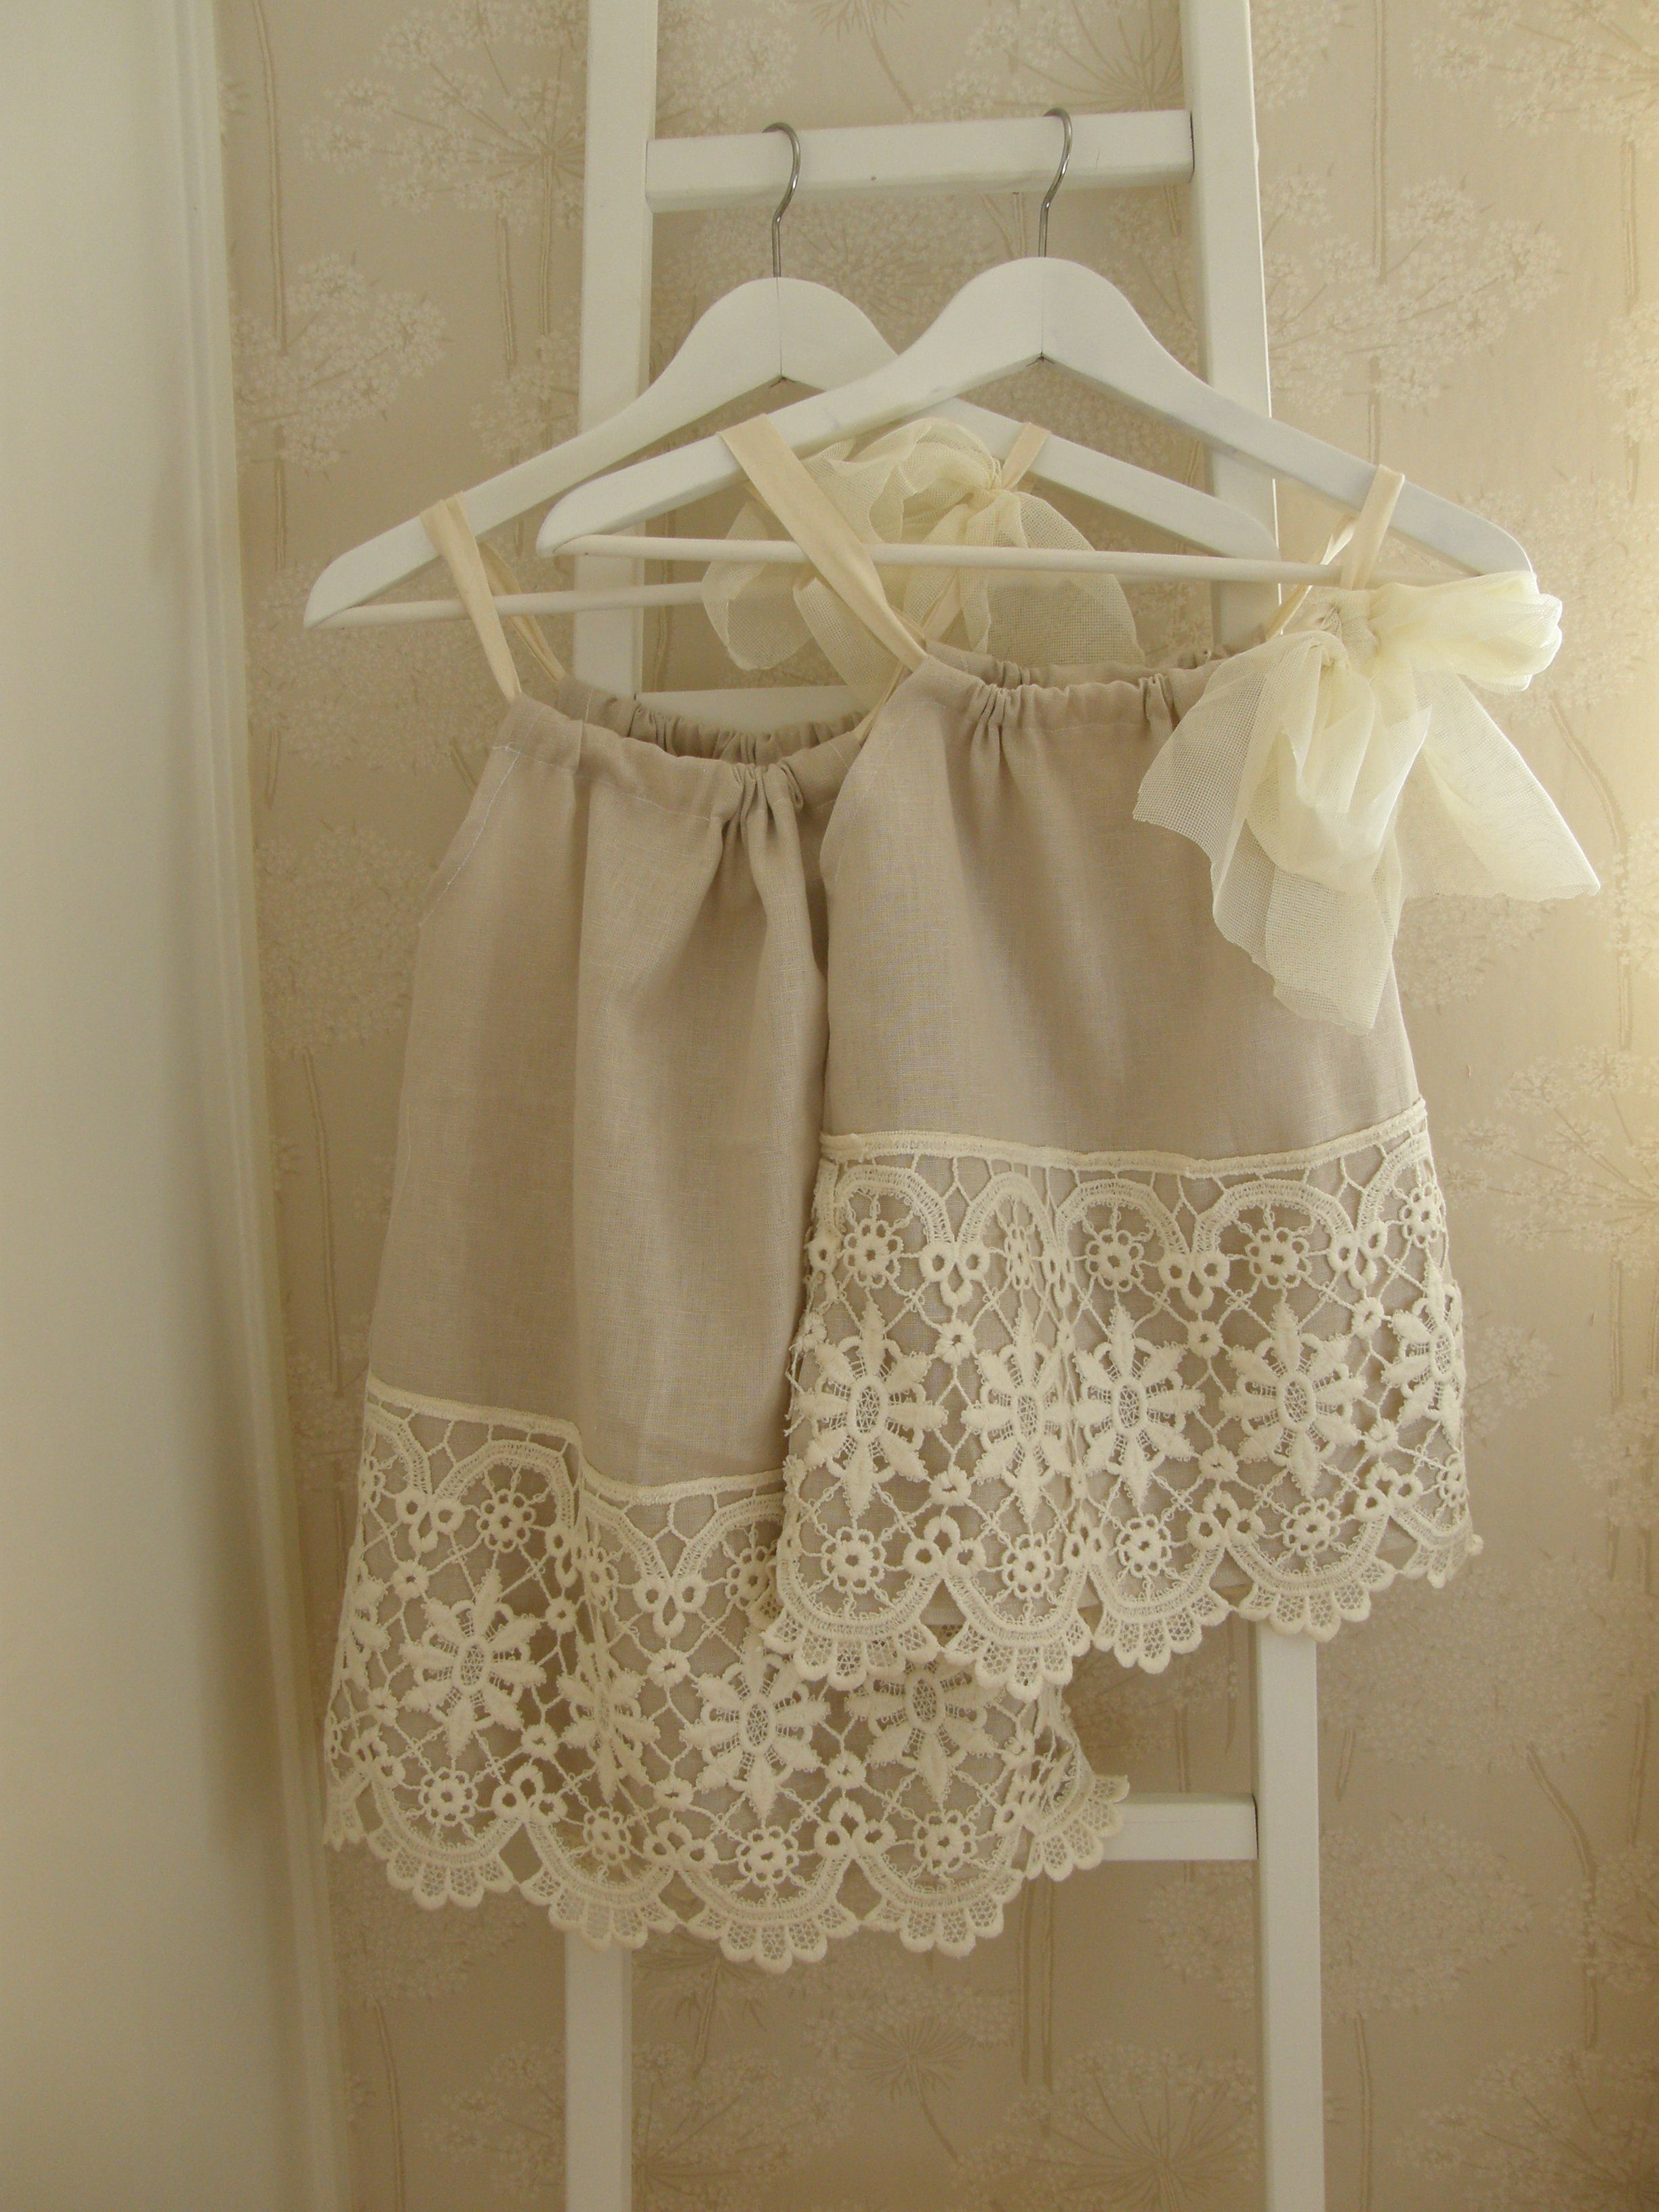 DIY girl dresses I can sew! Looks like a pillow case dress with a sheer ribbon and embellished with lace! & http://media-cache-ec4.pinimg.com/originals/87/cd/b3 ... pillowsntoast.com